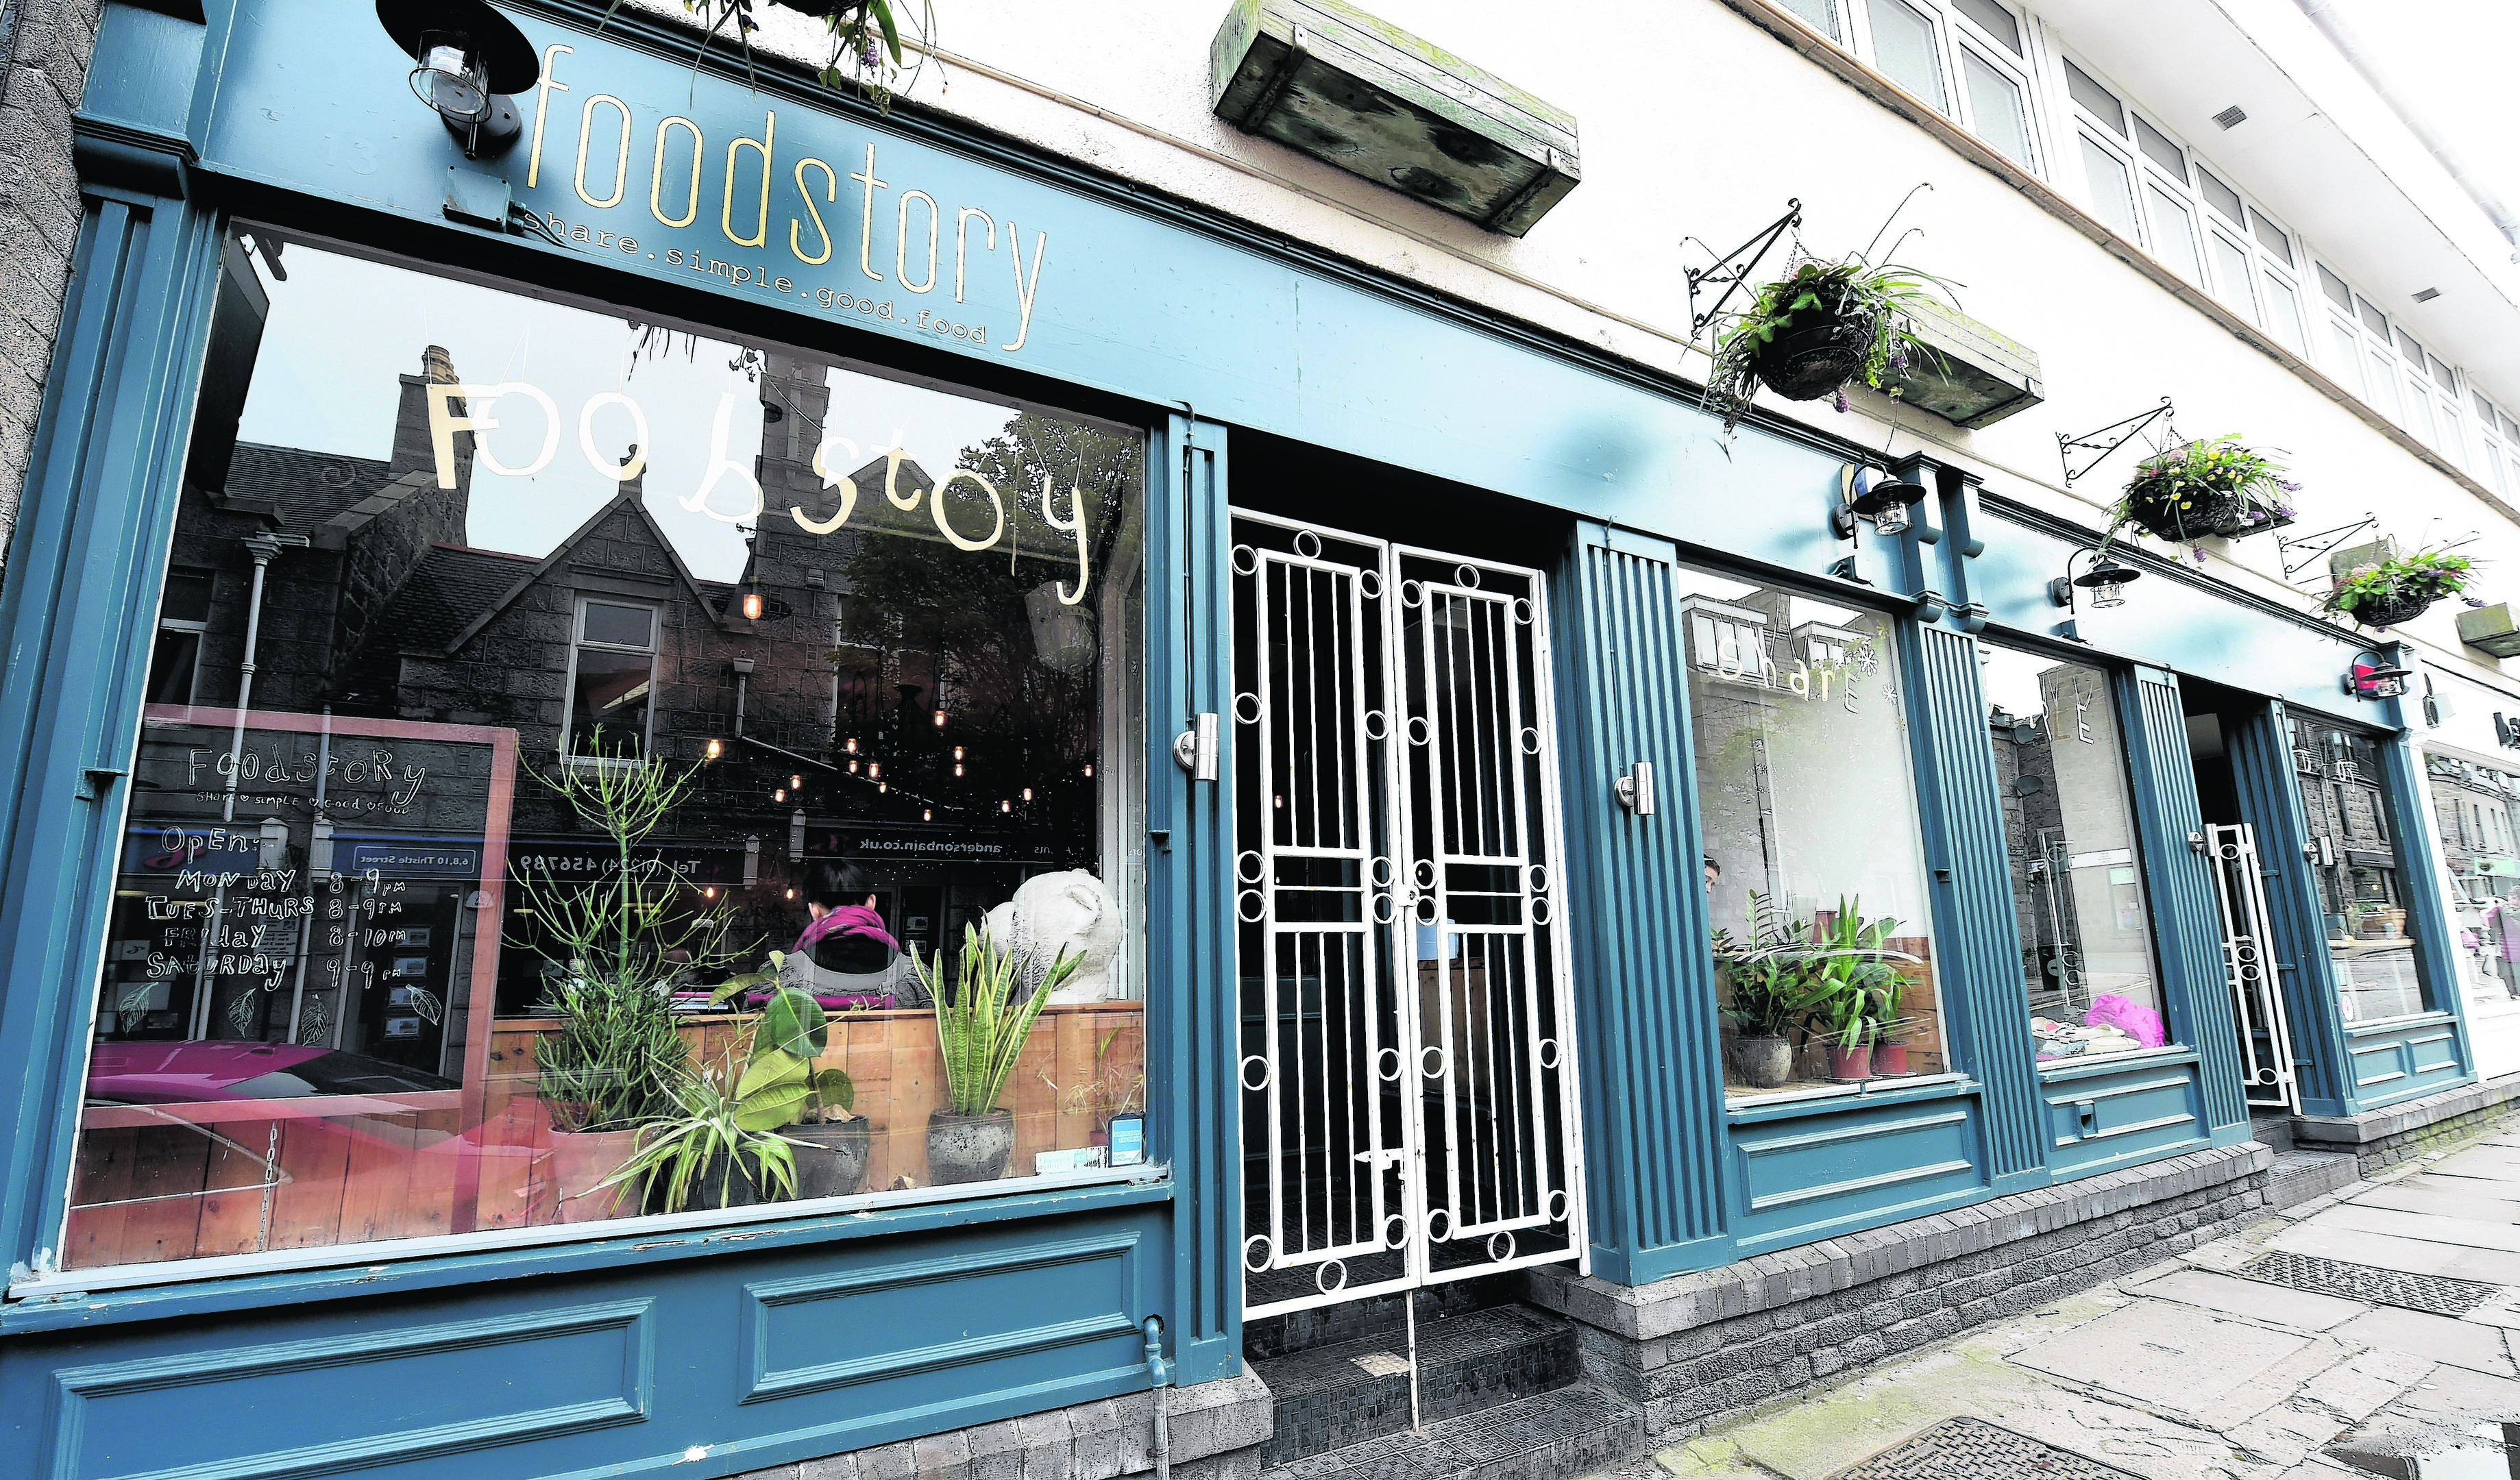 Food Story on Thistle Street in Aberdeen.